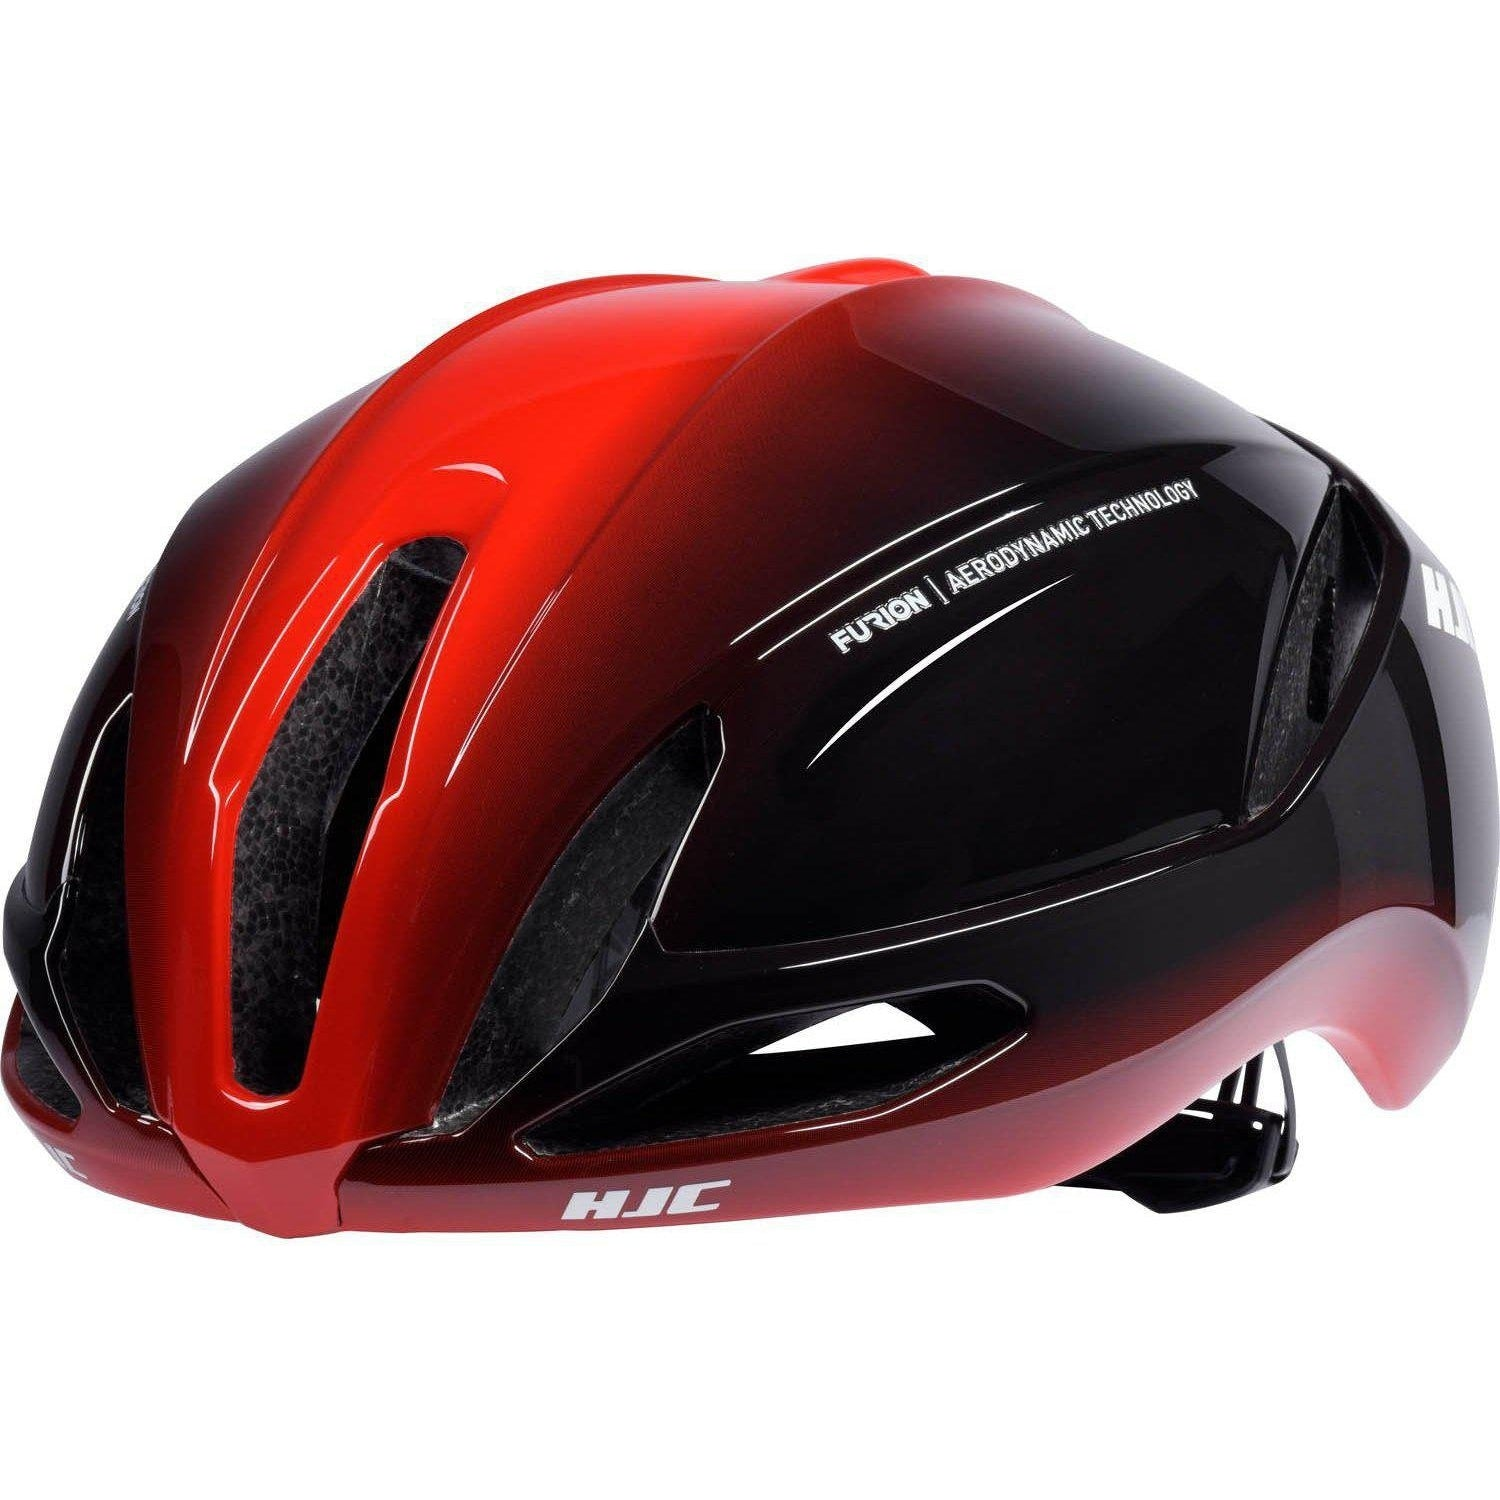 HJC-HJC Furion 2.0 Road Cycling Helmet-Fade Red-S-HJC81210101-saddleback-elite-performance-cycling